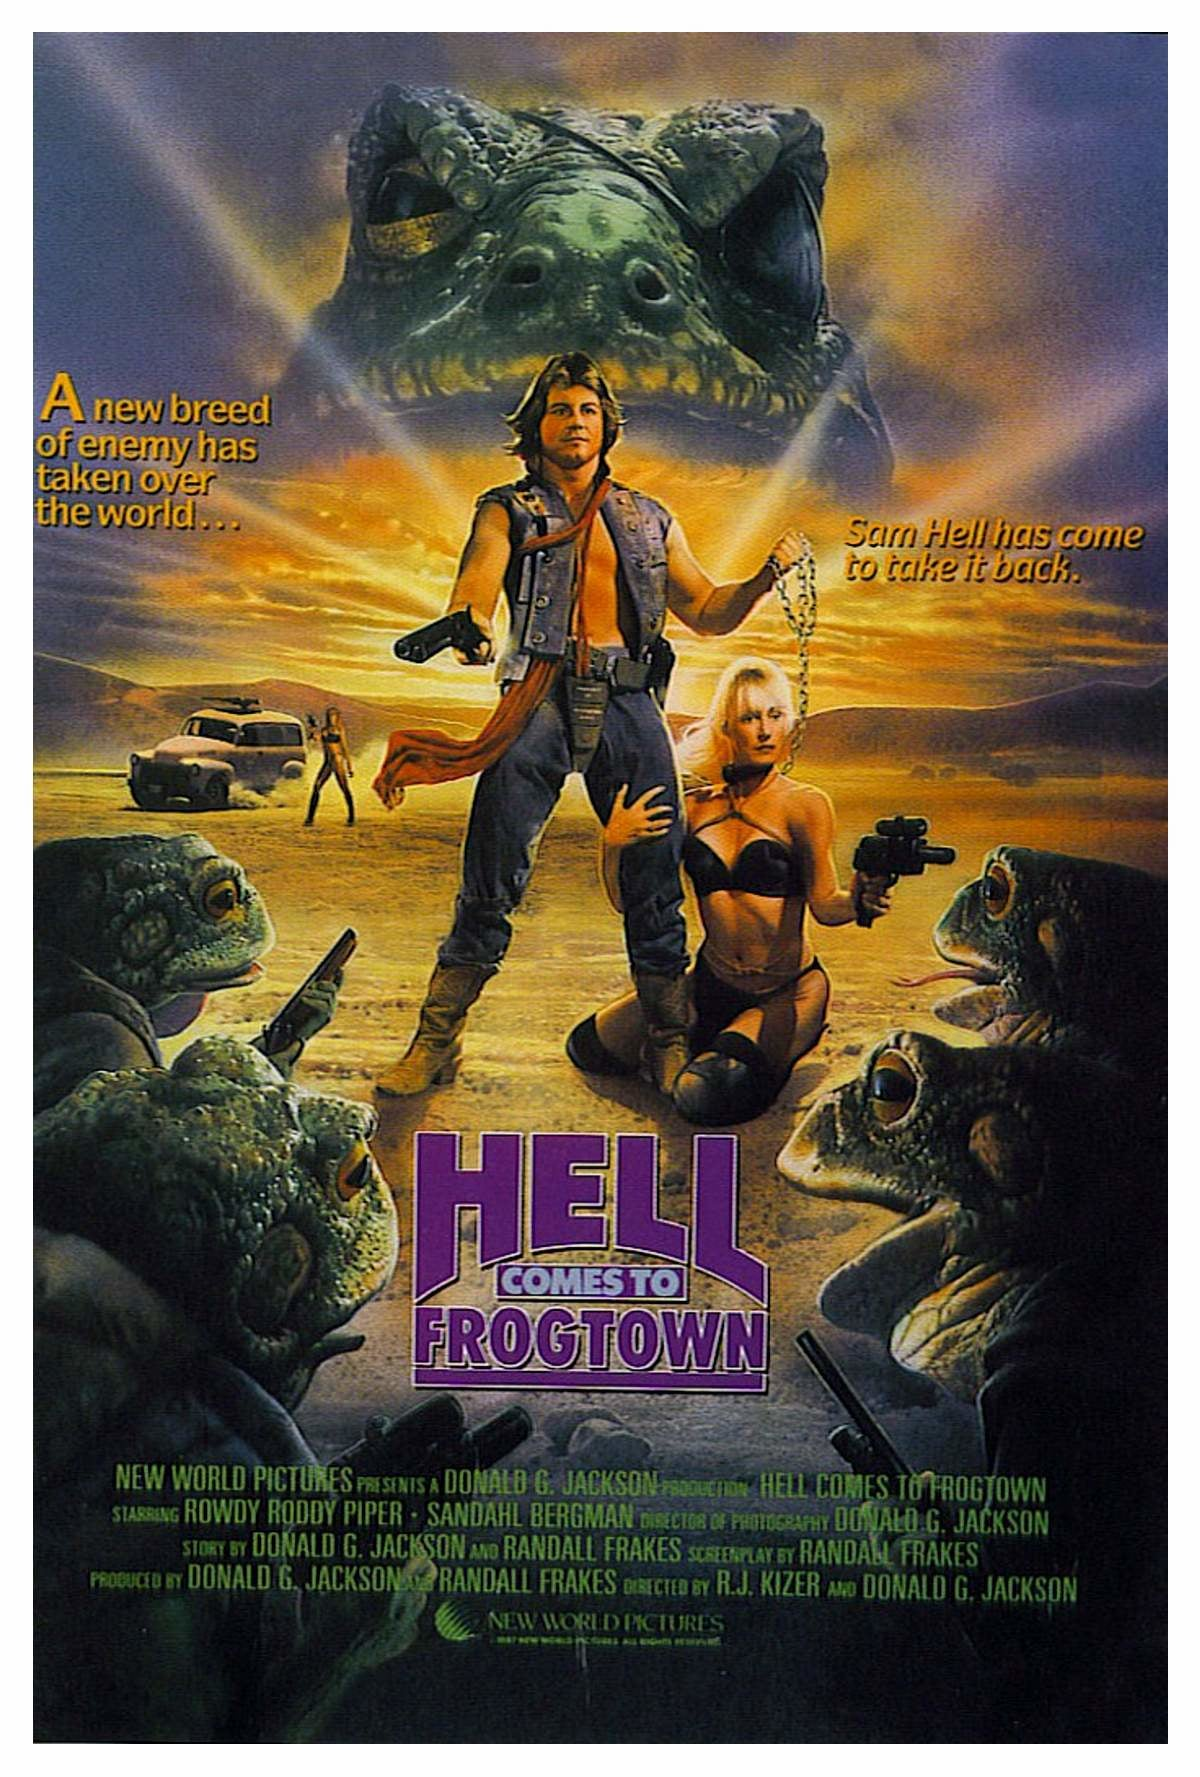 Hell Comes to Frogtown alternate poster